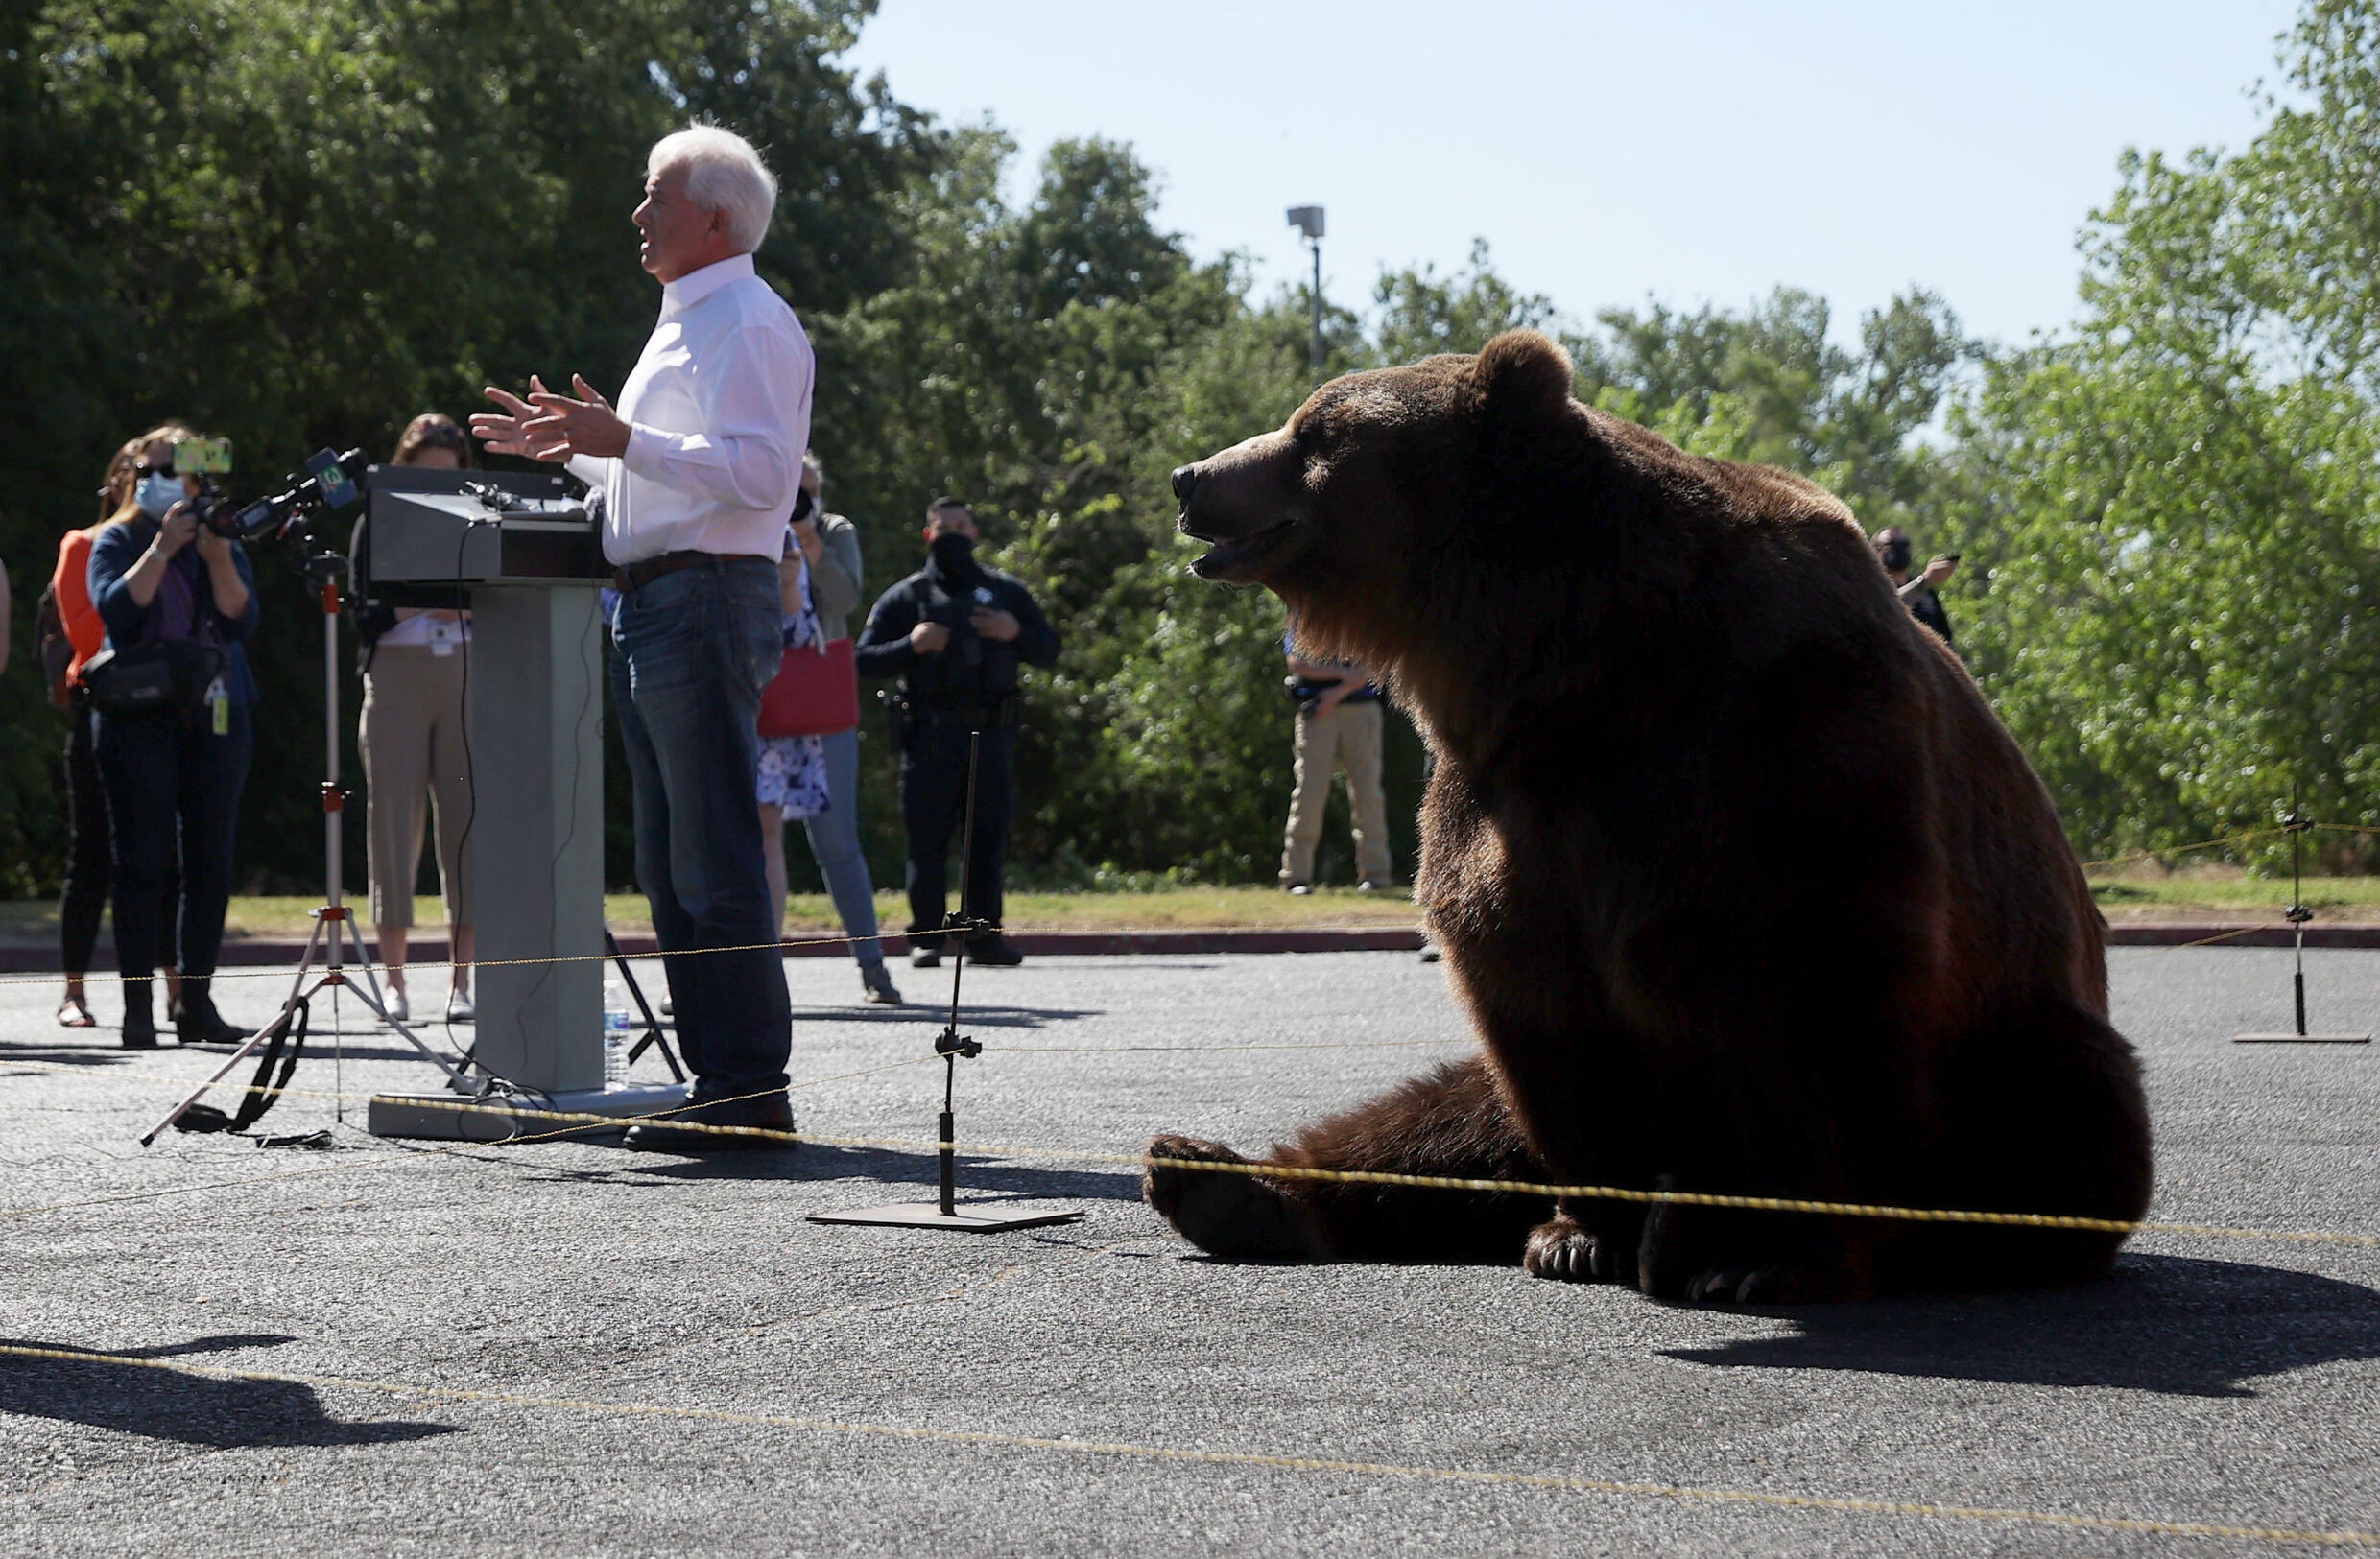 Among the 46 challengers for the governorship is John Cox, who launched his campaign with the help of a huge Kodiak bear